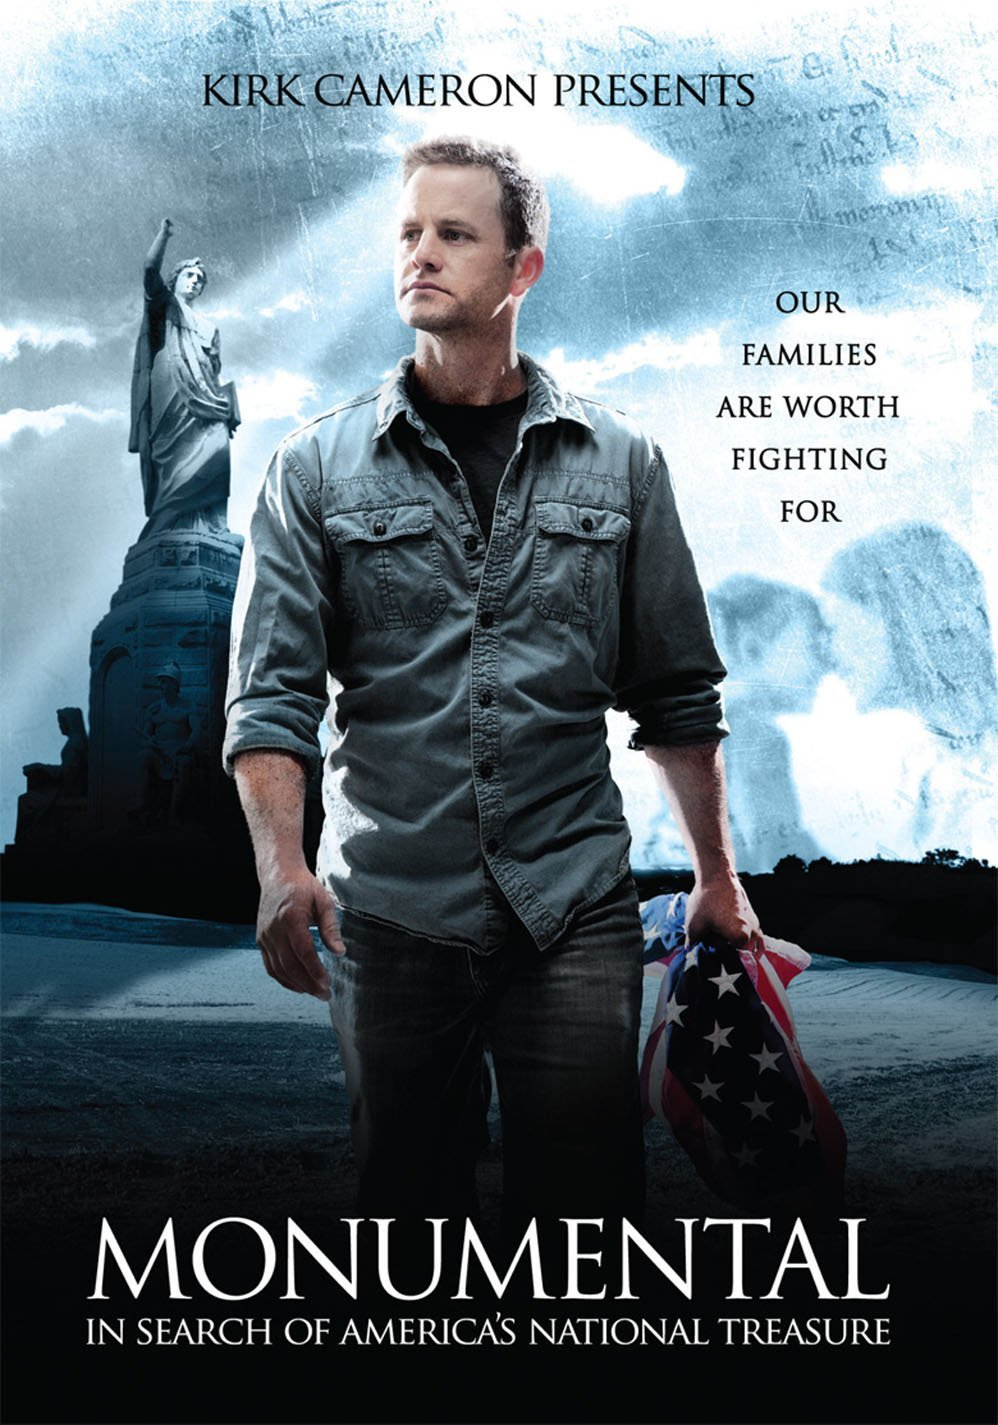 Kirk Cameron\'s Monumental Missed Opportunity | Veracity